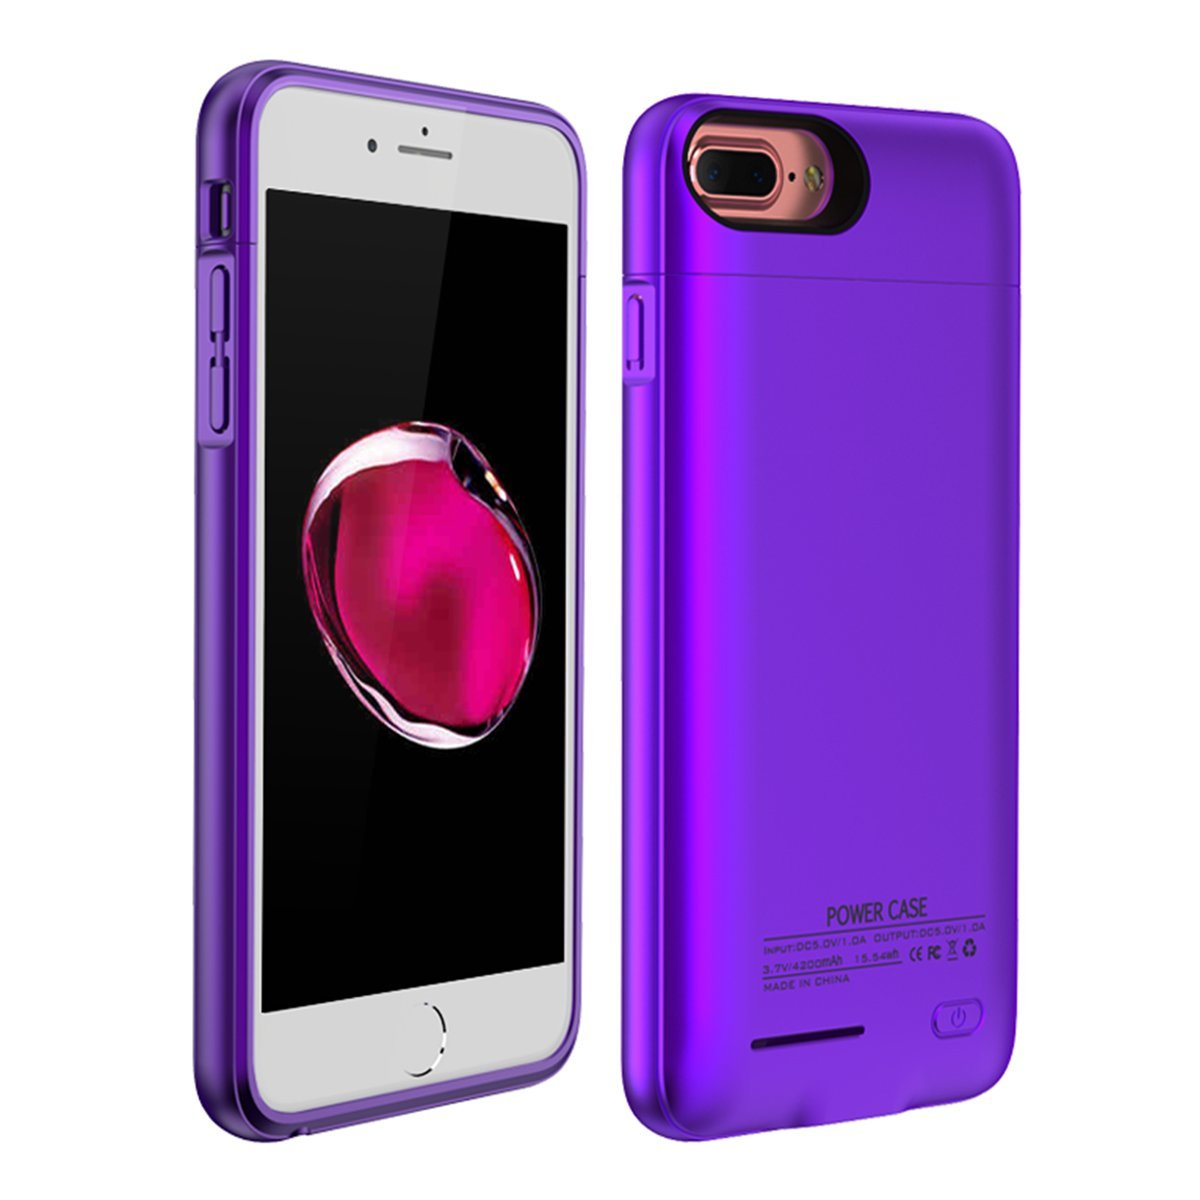 AICEDA iPhone 6 iPhone 6s 4.7 inch iPhone 7 iPhone 8 Rechargeable Battery Case Charger Cover, Shake Dust Dirt Proof For iPhone 6 iPhone 6s 4.7 inch iPhone 7 iPhone 8 - Purple